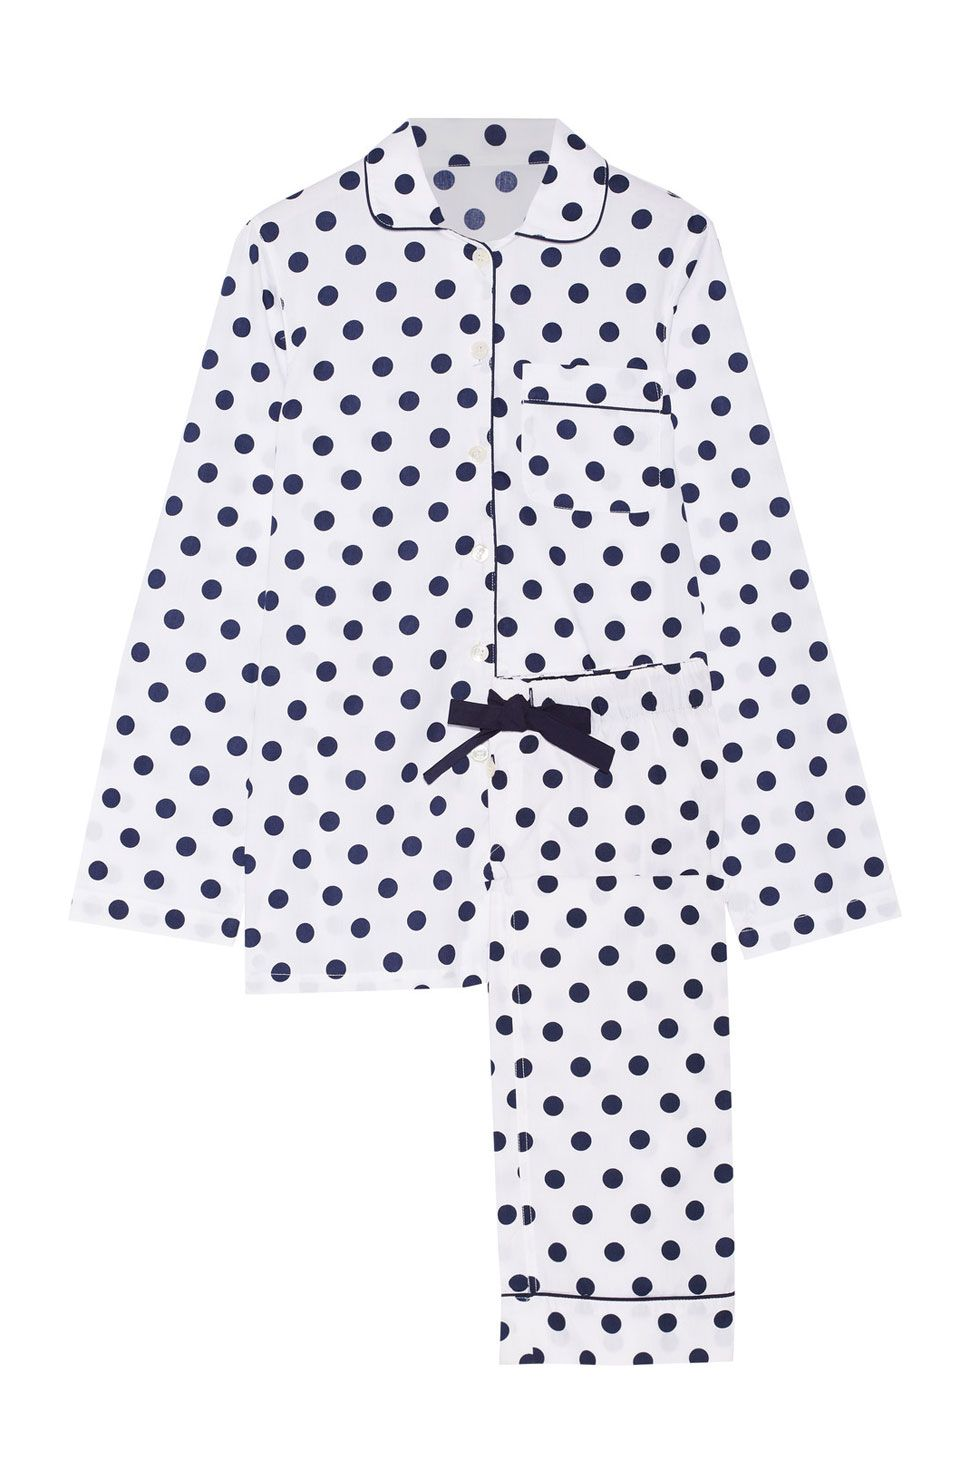 """<p>A mood-lifting polka-dot set that's on post-Black Friday sale *screams*. Swap out the pants for a pair of girlfriend jeans for a brunch date or a quick run to the grocery store. </p><p><strong data-redactor-tag=""""strong"""" data-verified=""""redactor"""">Three J NYC Polka-Dot Cotton Poplin Pajama Set, $91&#x3B; <a href=""""https://www.net-a-porter.com/us/en/product/738181/Three_J_NYC/jamie-polka-dot-cotton-poplin-pajama-set"""" target=""""_blank"""" data-tracking-id=""""recirc-text-link"""">net-a-porter.com</a>.</strong></p>"""